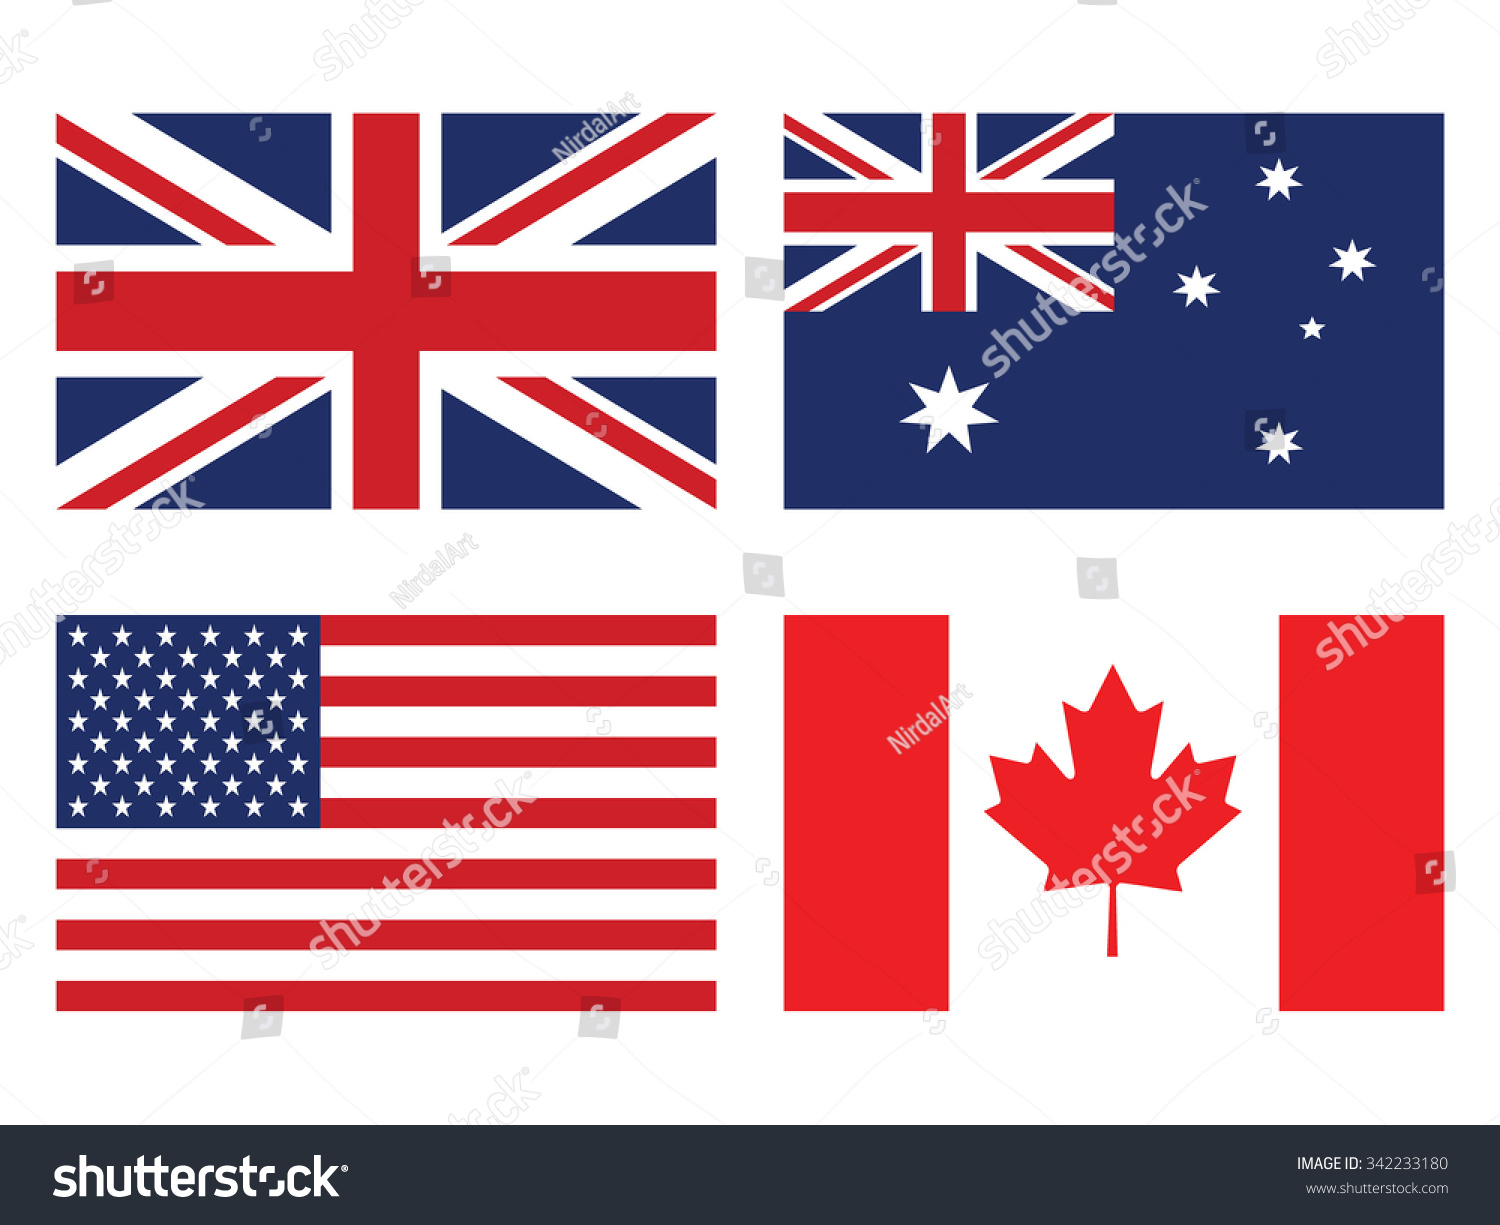 how to put a canadian flag in facebook message